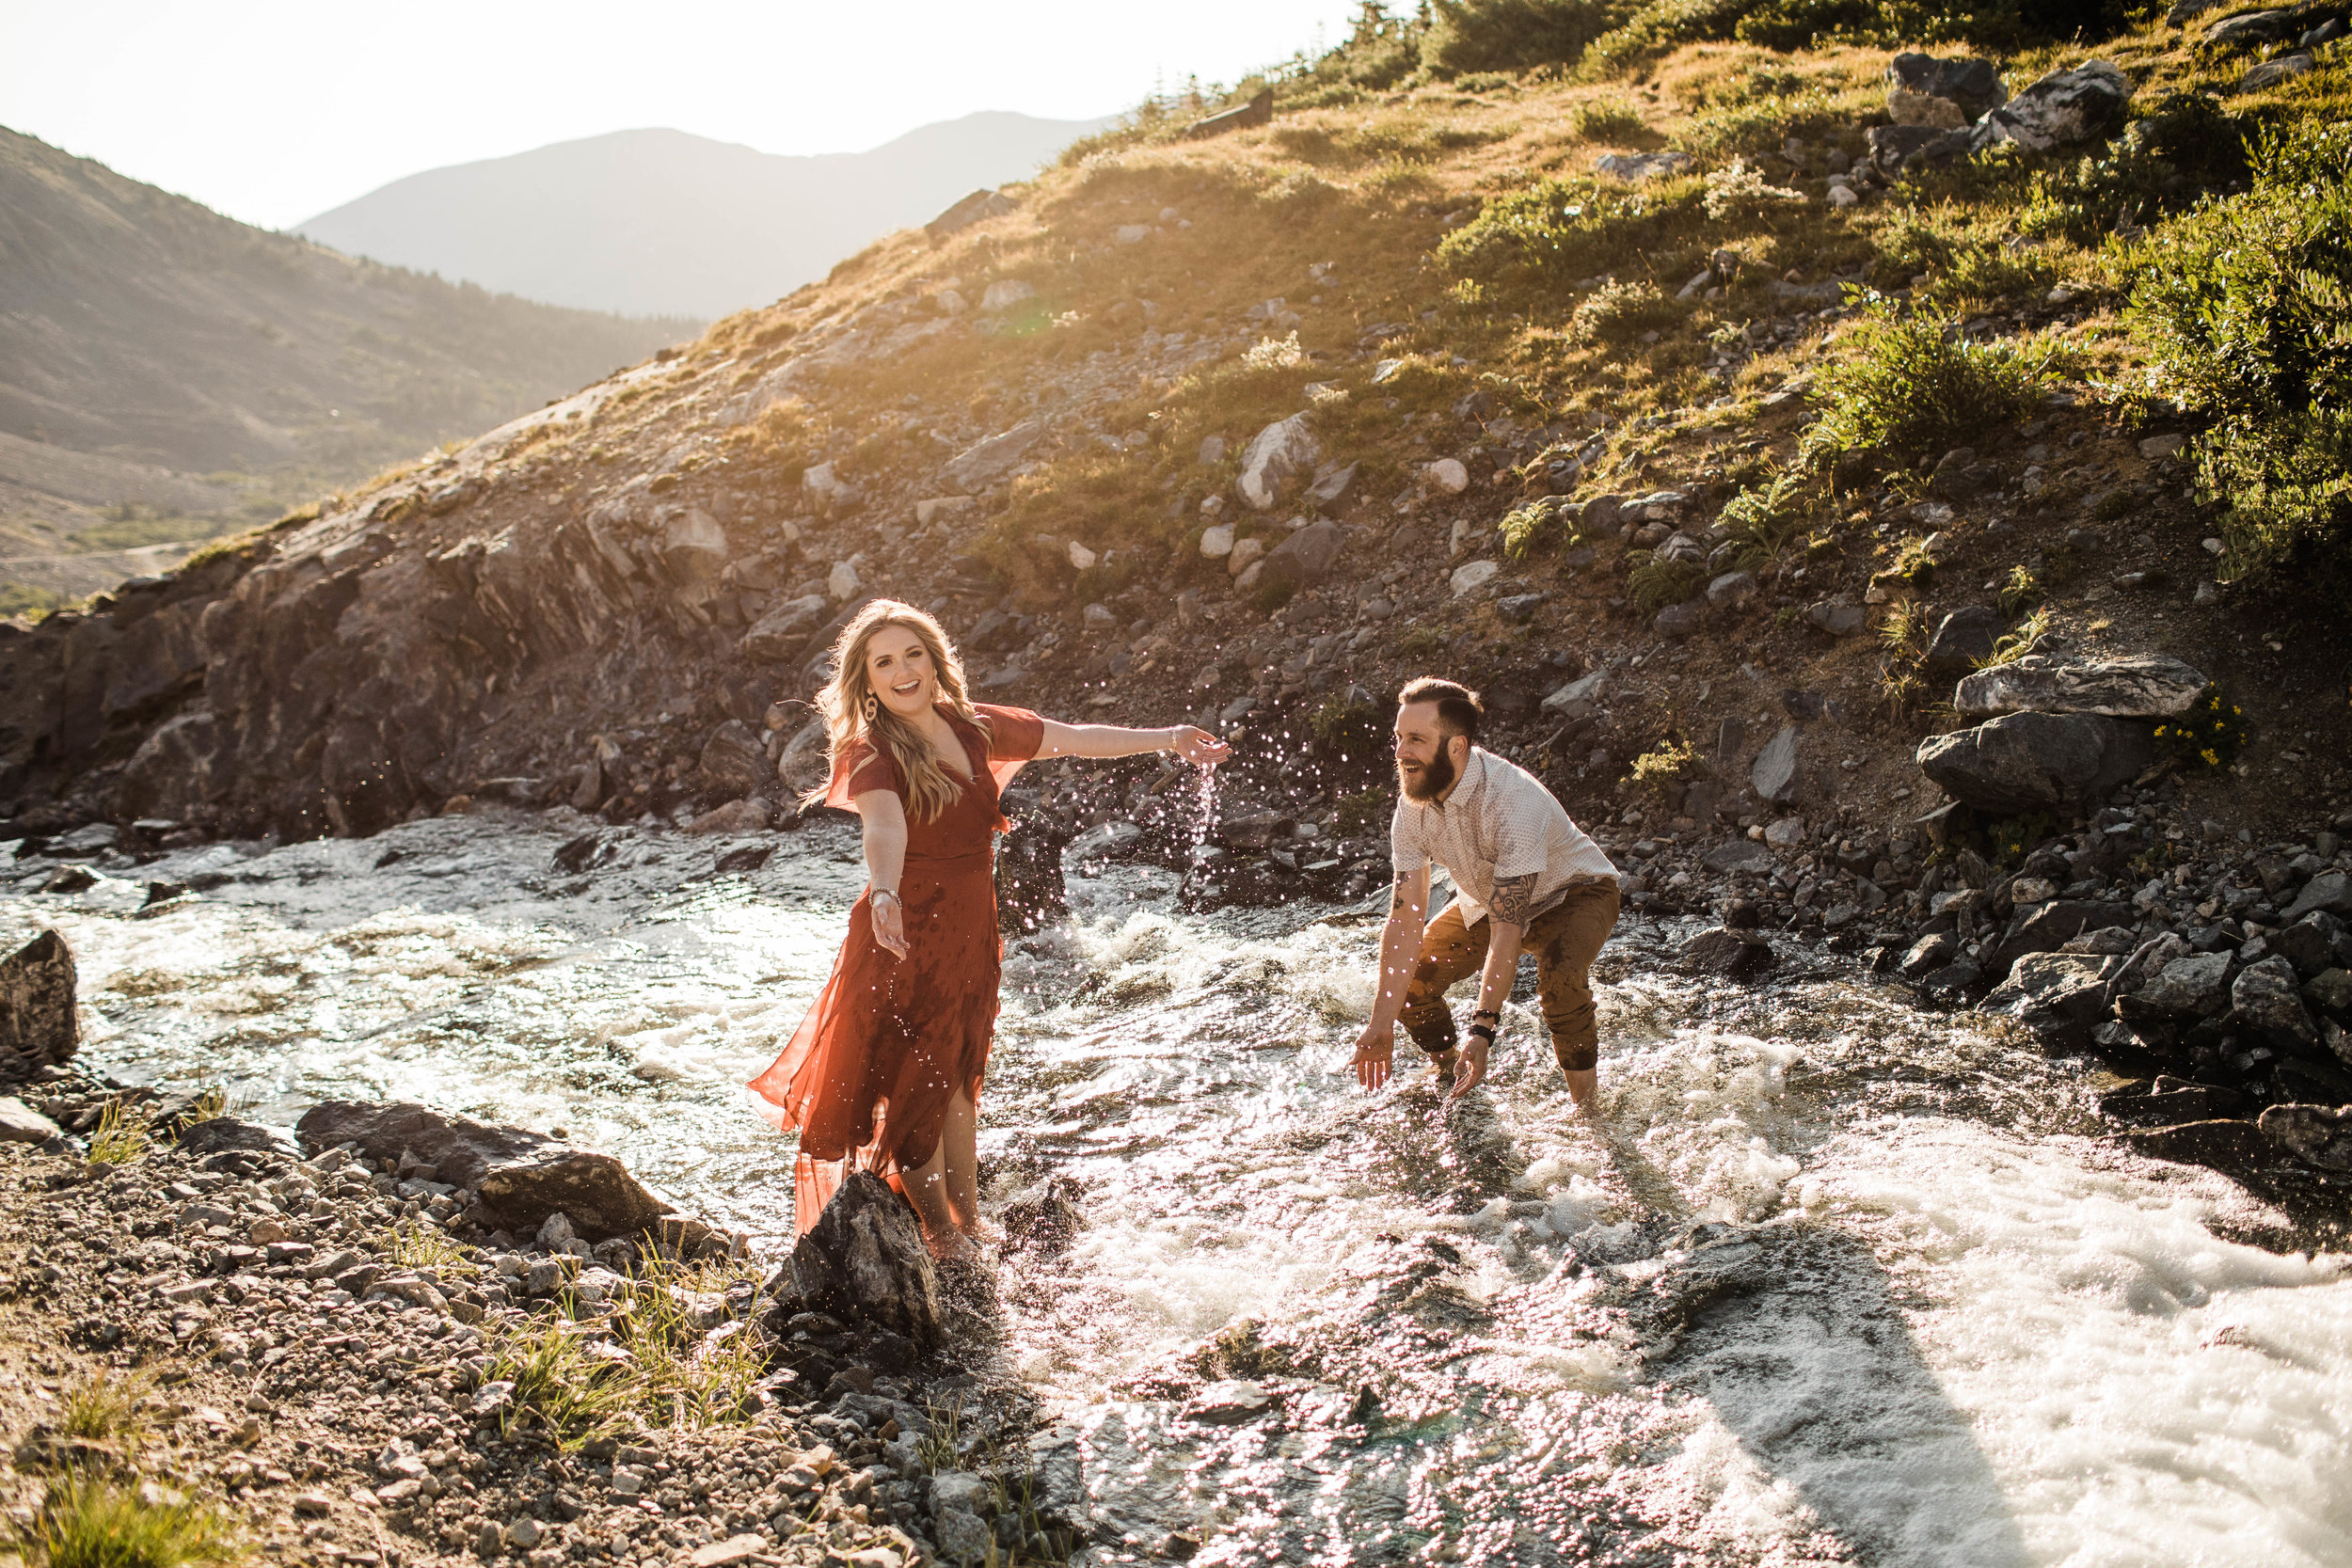 eloping couple splashing around in a creek during their adventurous engagement photos in the mountains of Colorado | Breckenridge elopement photographers